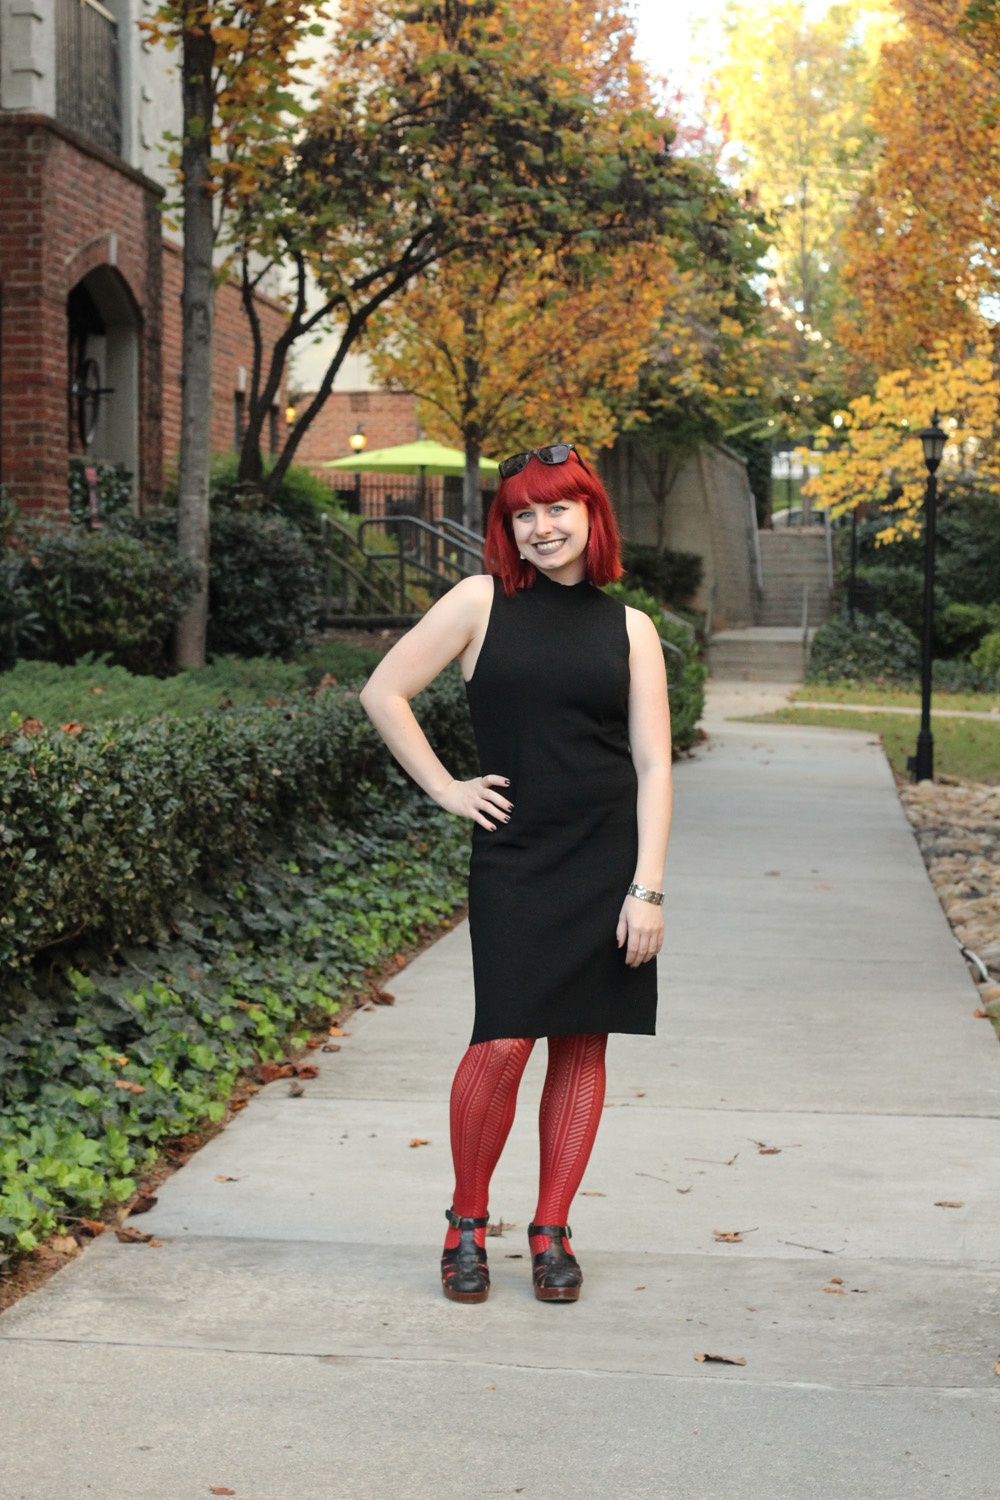 Fall Outfit: Black Ribbed Mock Neck Dress with Rust Orange Patterned Tights